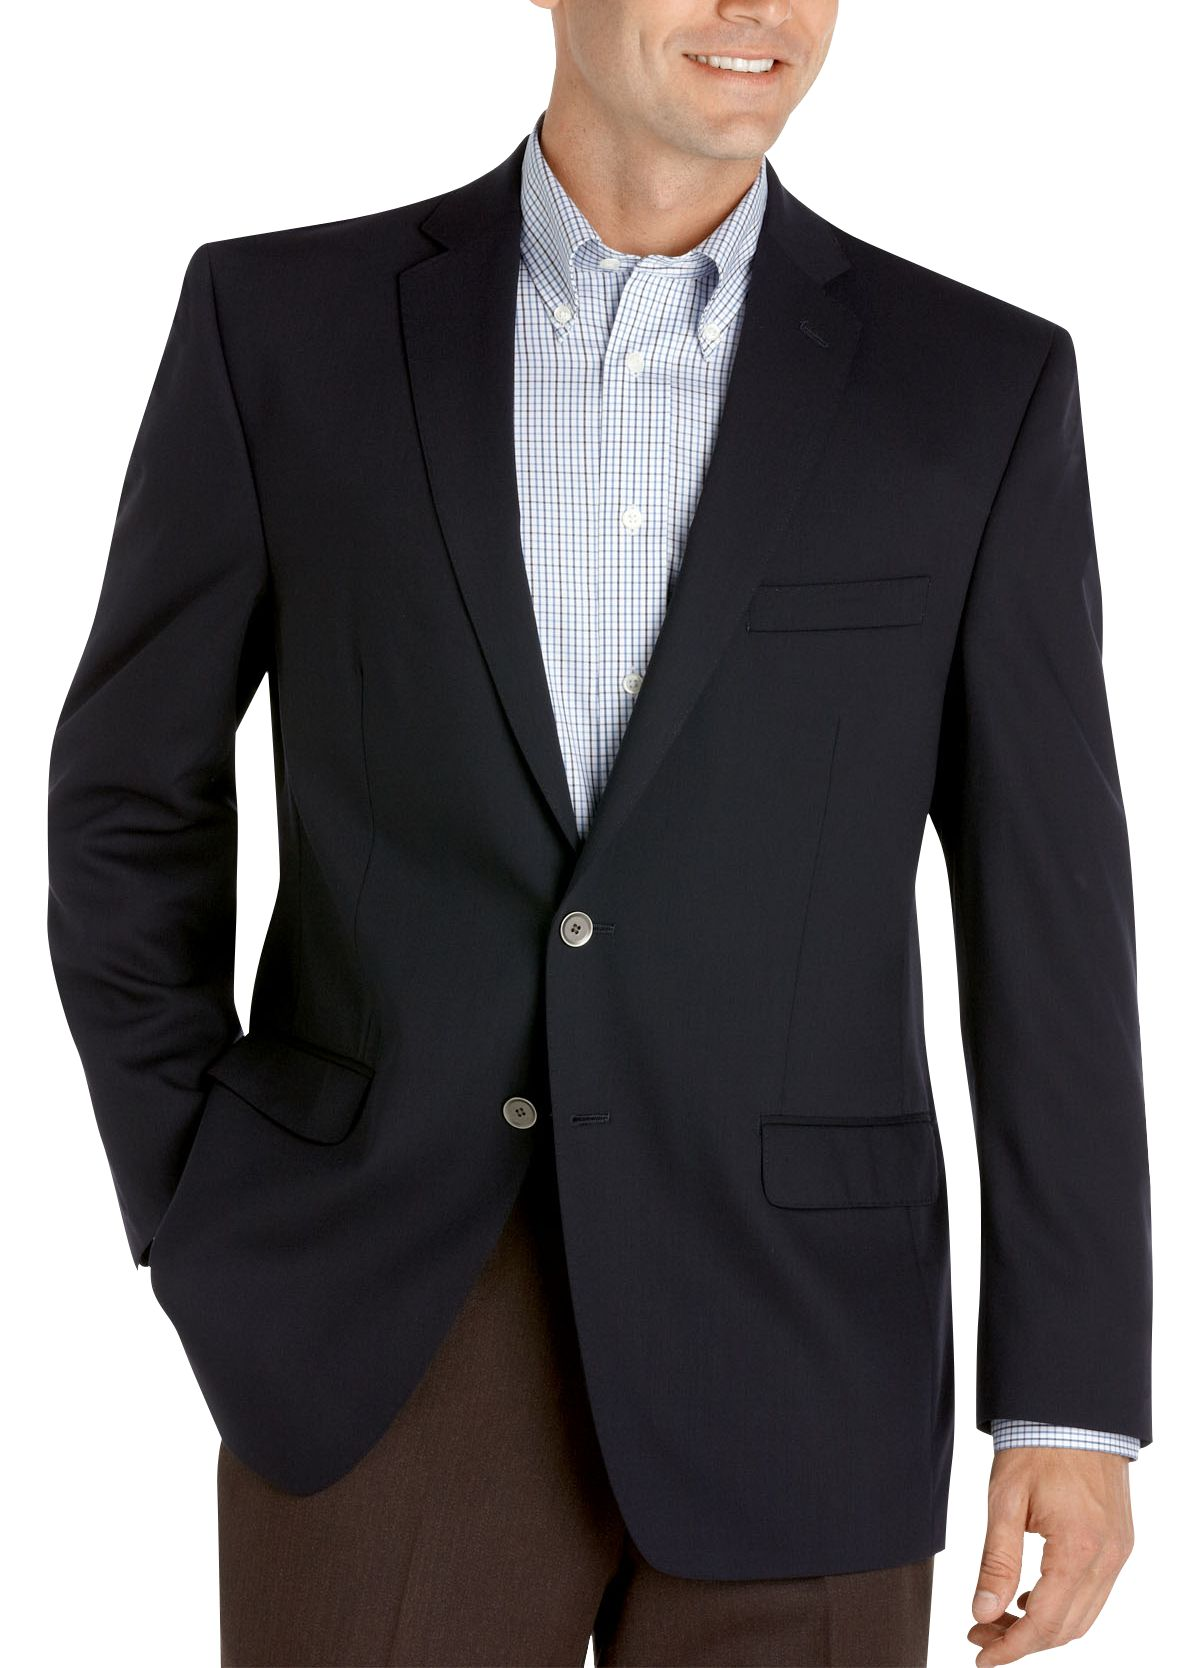 Calvin Klein Slim Fit Navy Blazer - Men's Blazers | Men's Wearhouse